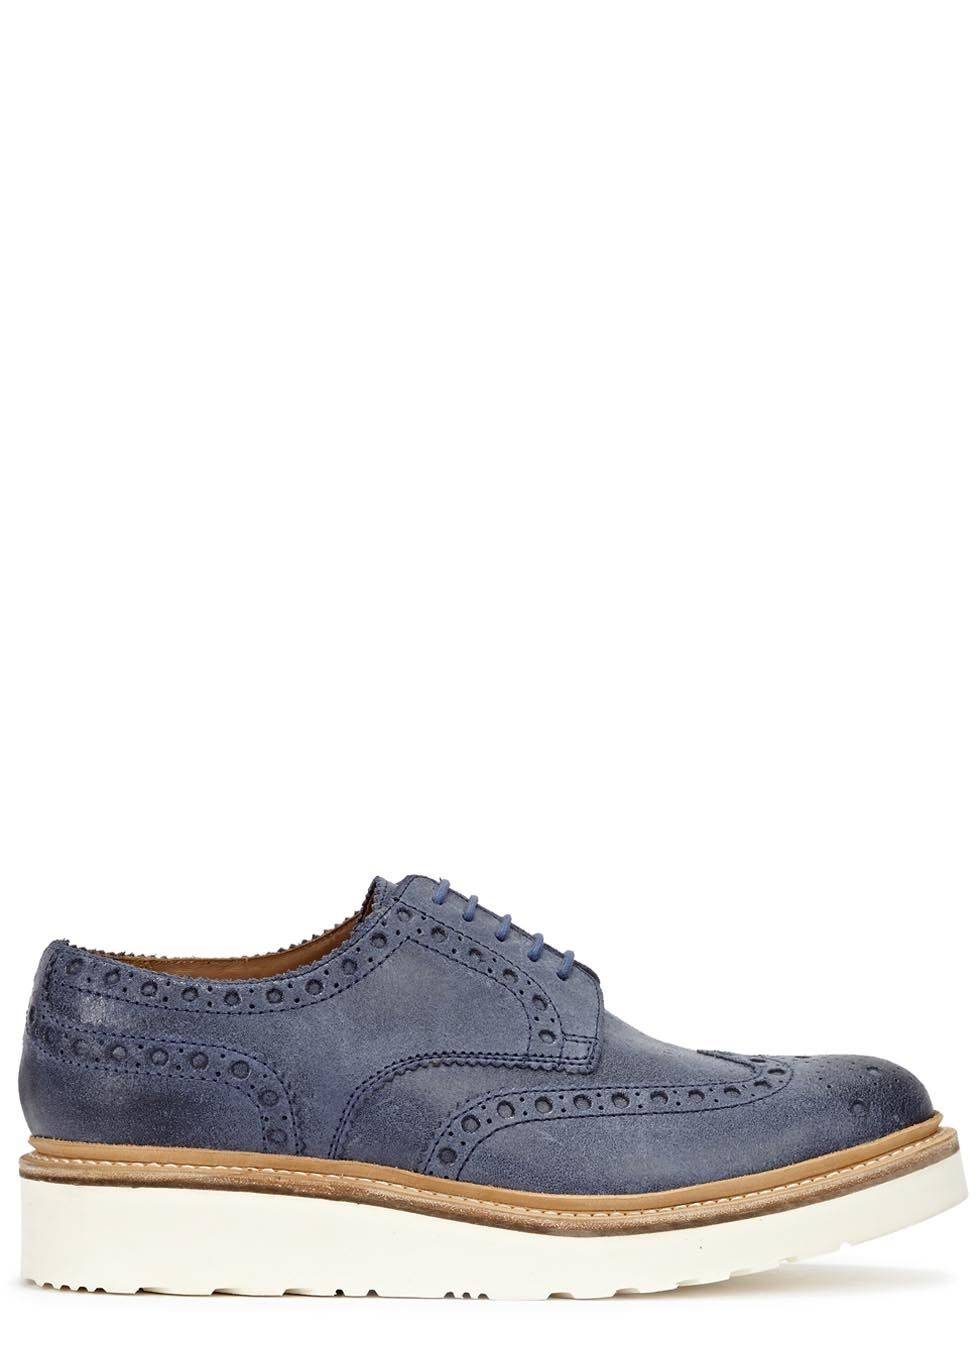 Grenson blue brushed leather brogues